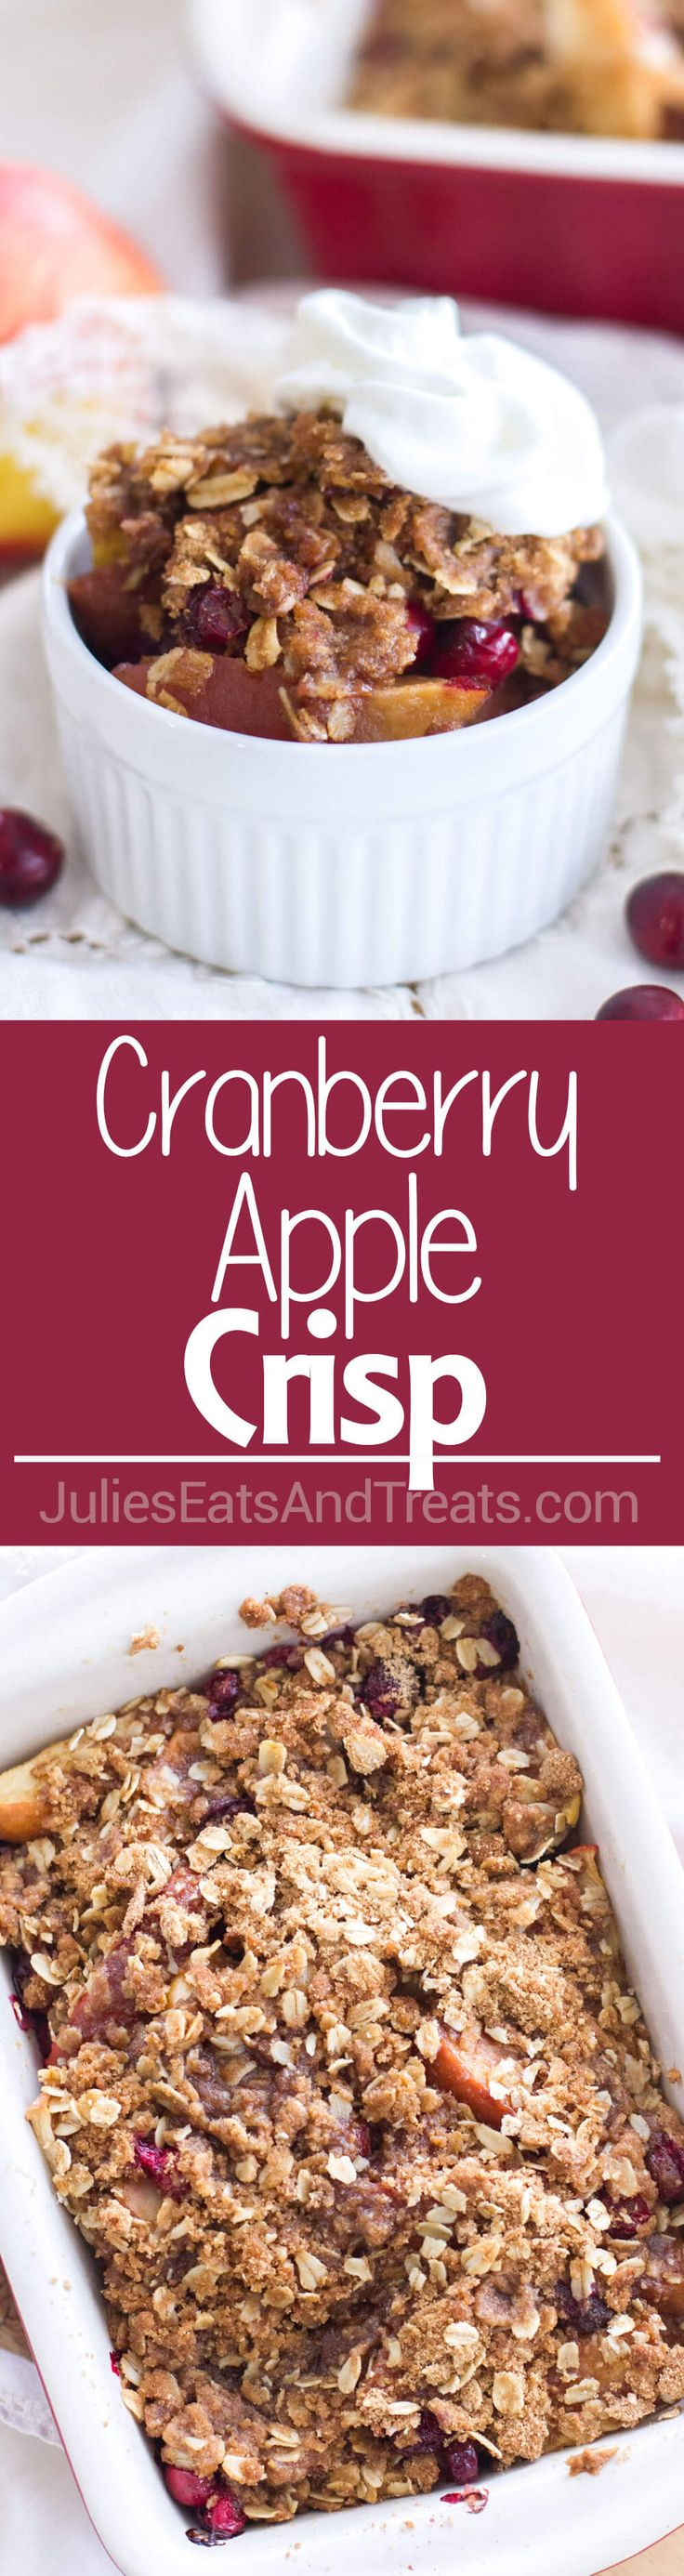 Cranberry Apple Crisp with Brown Sugar Cinnamon Crumble ~ Easy fruit crisp recipe filled with apples and cranberries! via @julieseats